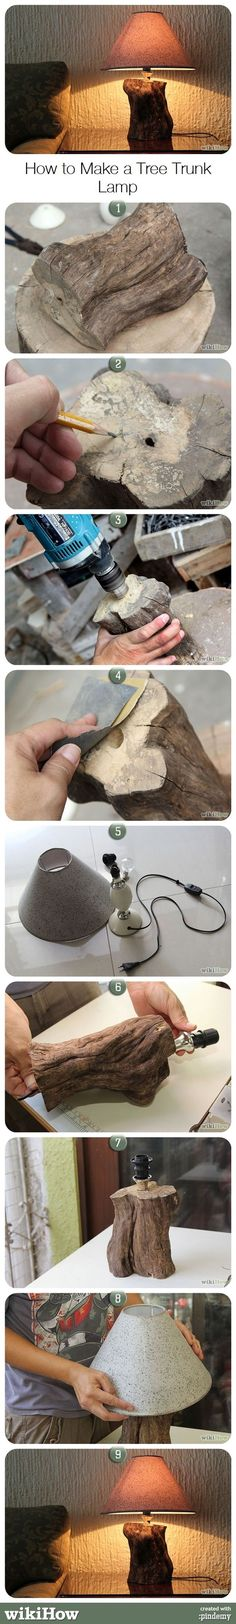 How to Make a Tree Trunk Lamp. Want a cool lamp for your home? Make use of a fallen tree and broken lamp shade to transform them into a beautiful decorative lighting piece for your living room or bedroom. Find your fallen tree. Wood Projects, Woodworking Projects, Wood Lamps, Driftwood Lamp, Driftwood Crafts, Diy Holz, Wood Creations, Diy Furniture, Diy Home Decor